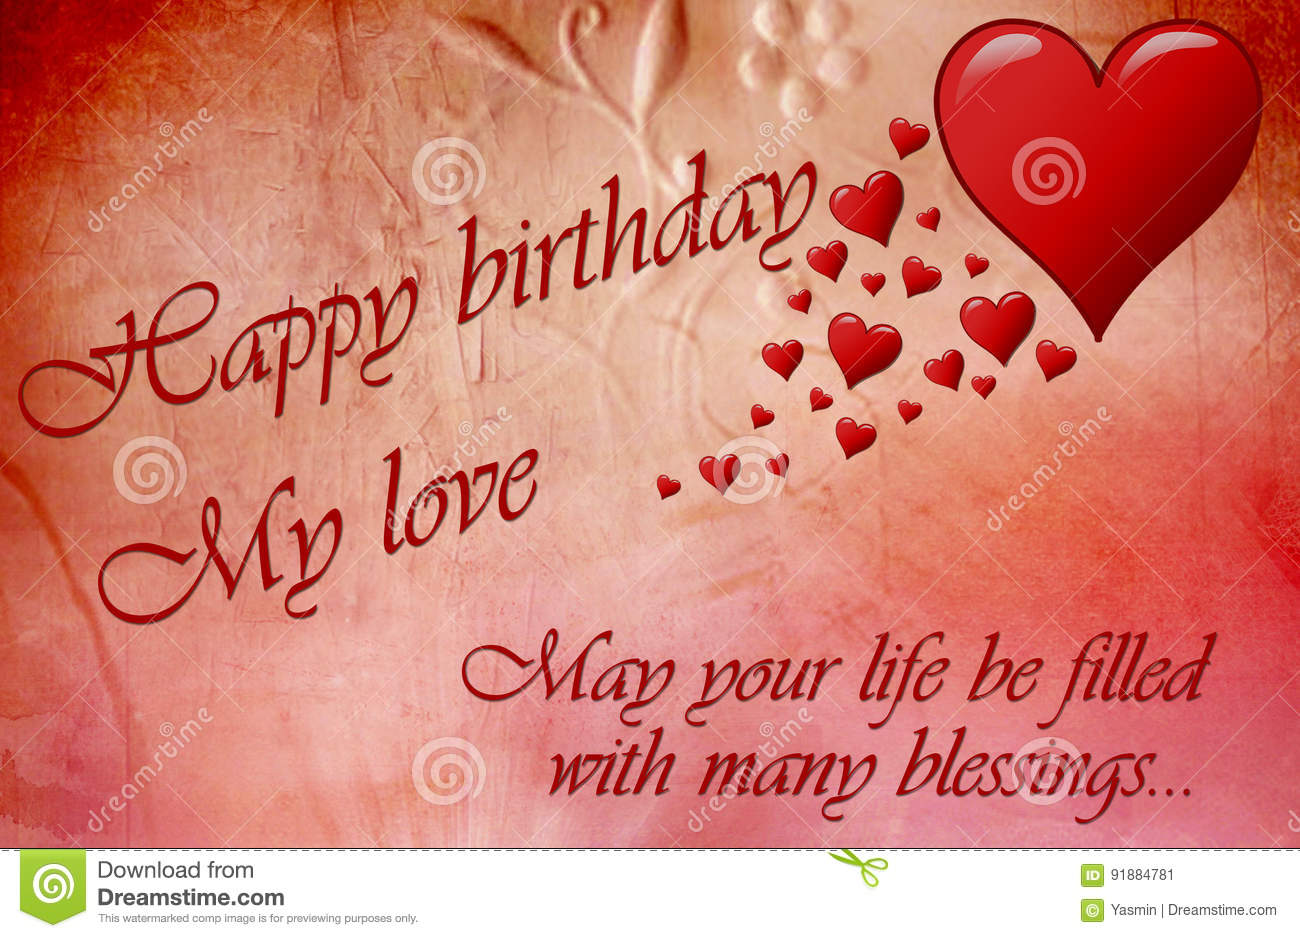 Happy Birthday Card With Red Hears And A Message